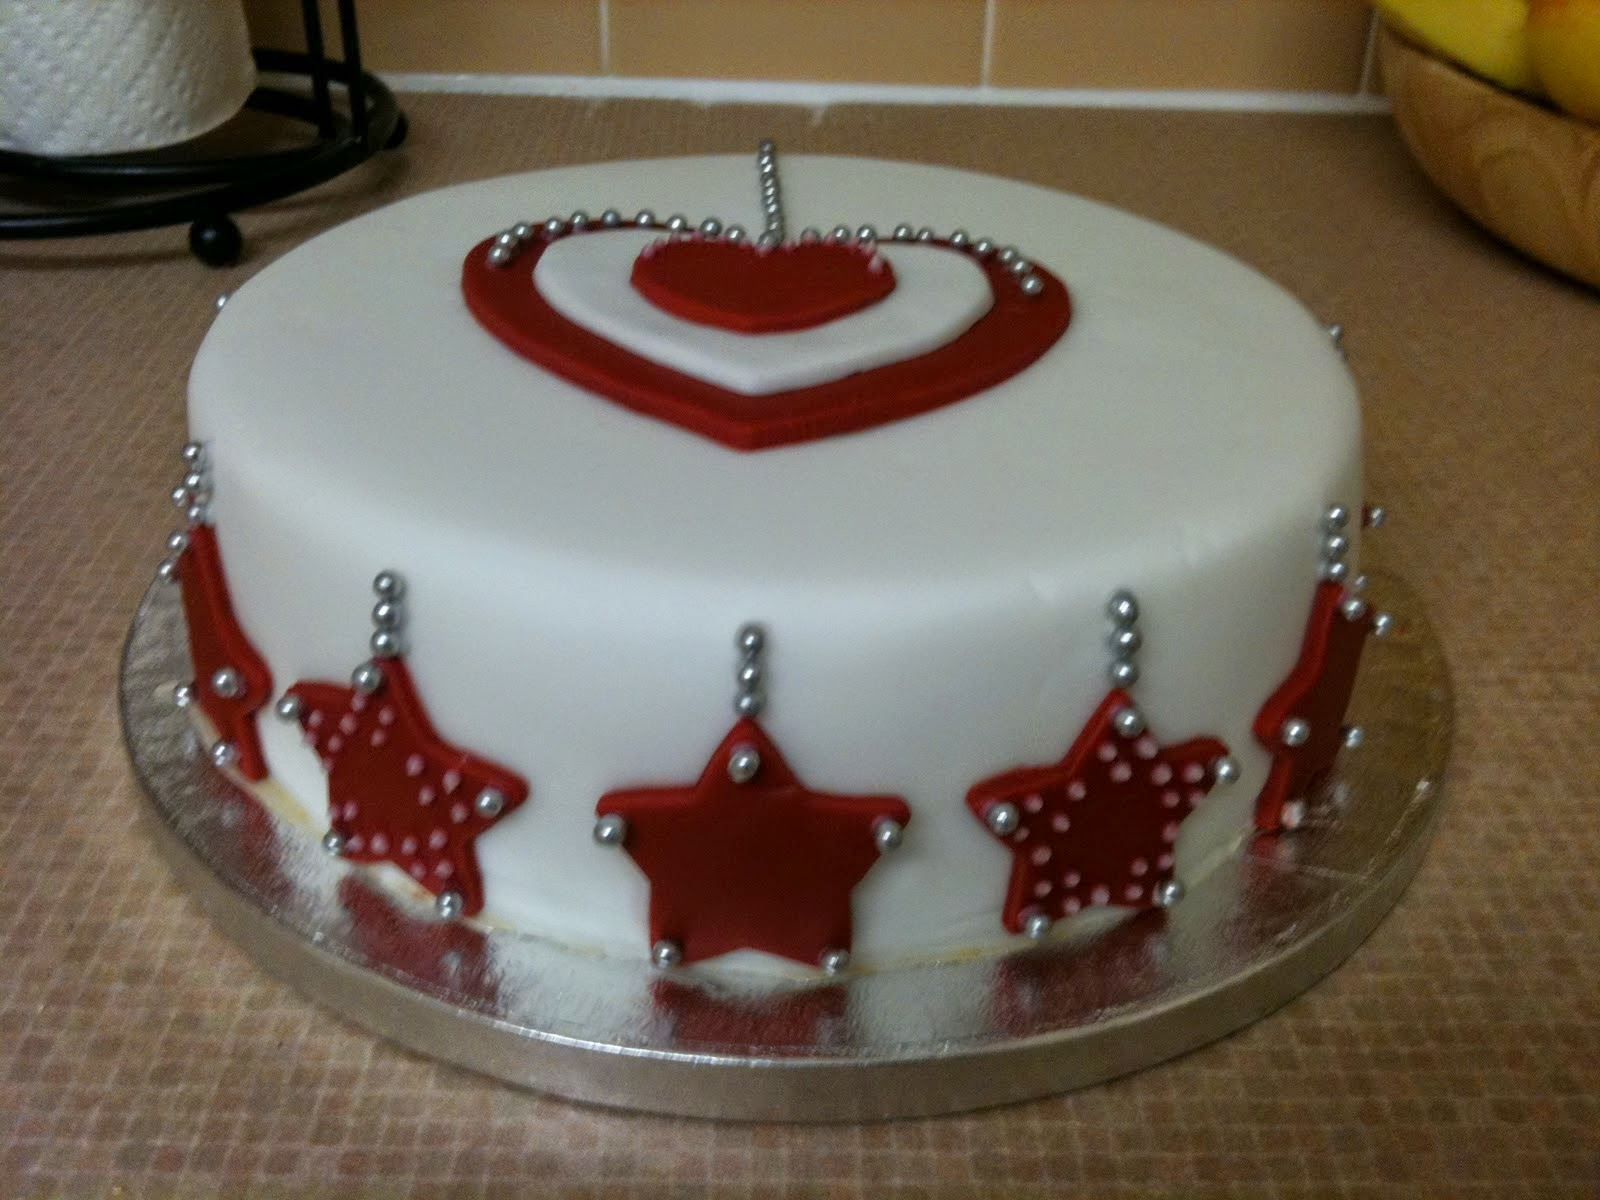 Christmas Cake Decoration With Stars : Christmas cake decoration ideas beautiful creatife my blog